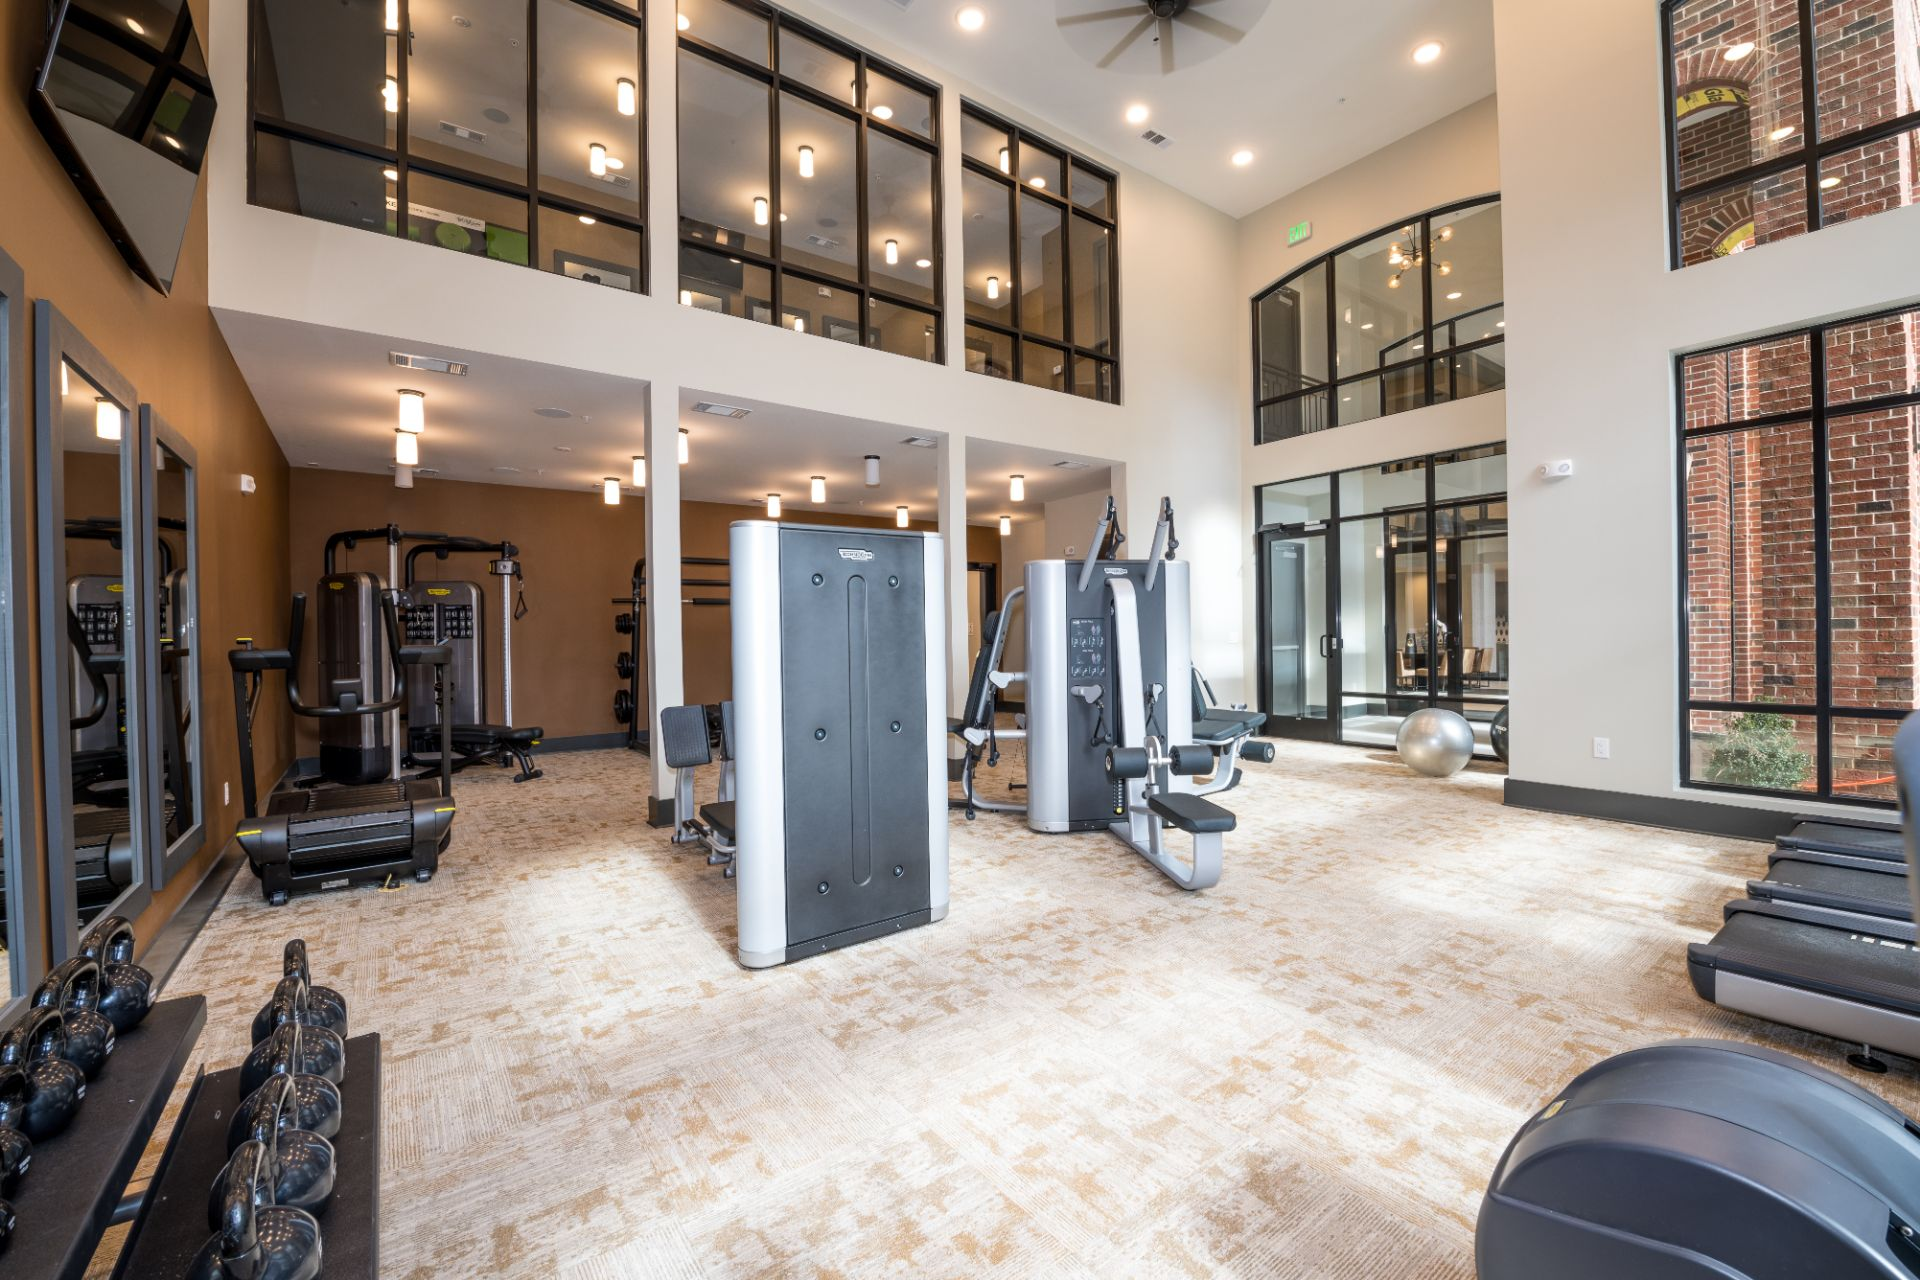 Fitness center interior